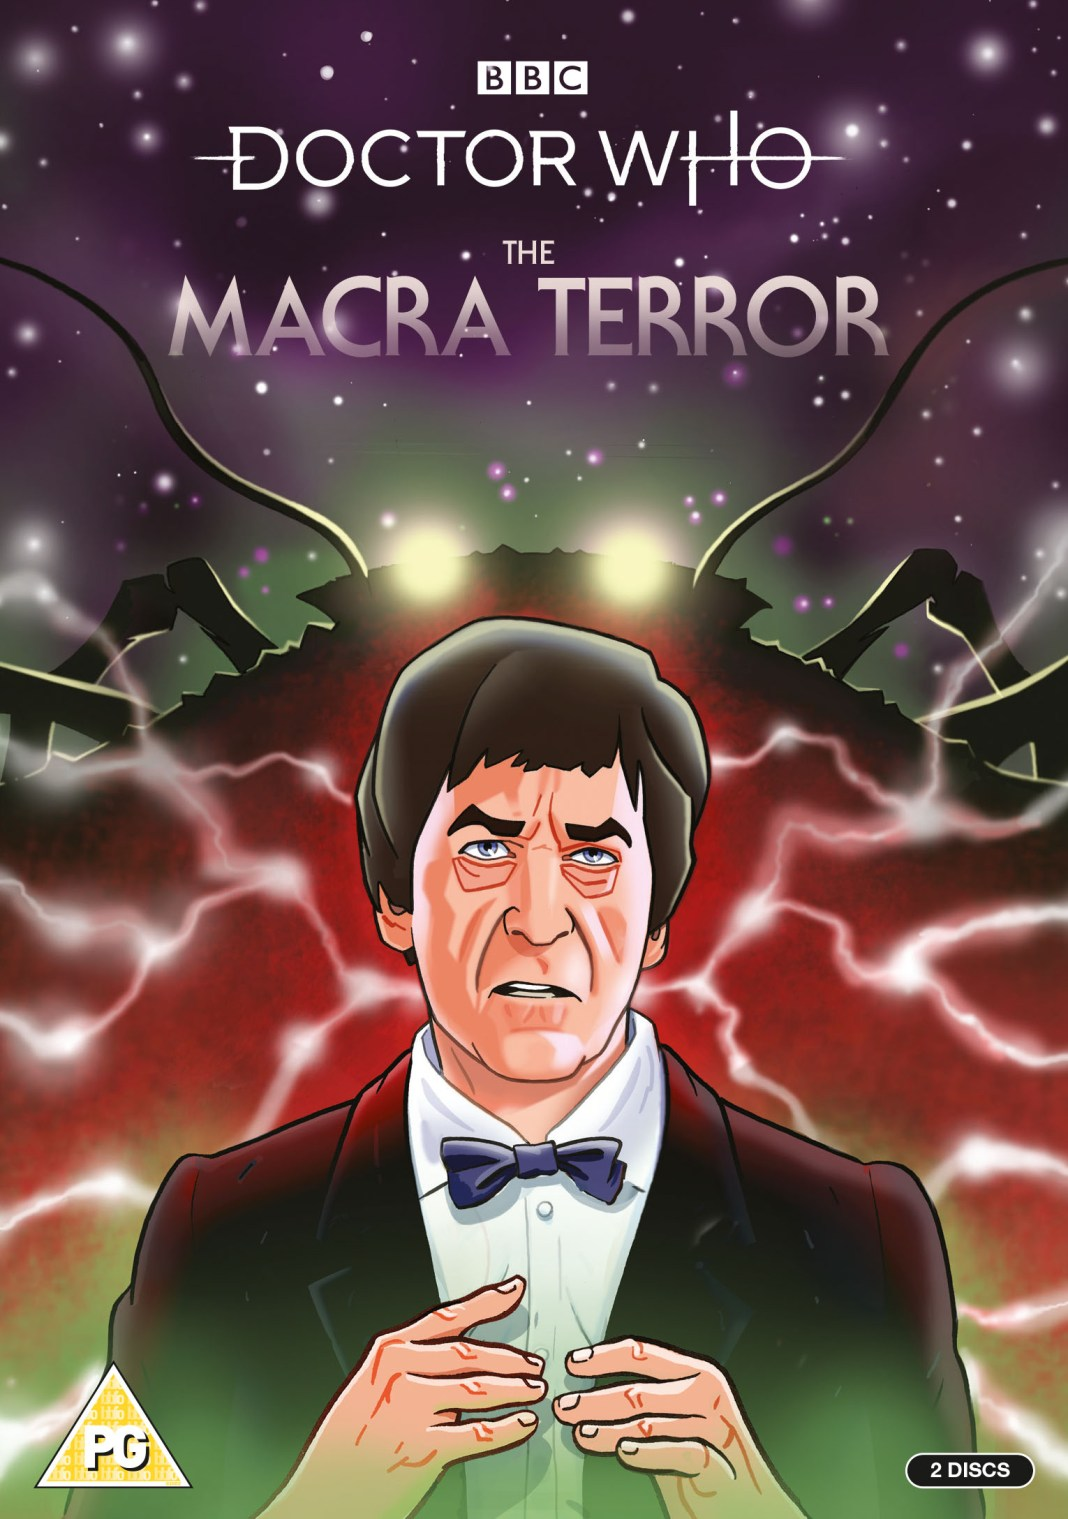 Doctor Who: The Macra Terror DVD cover (c) BBC Studios